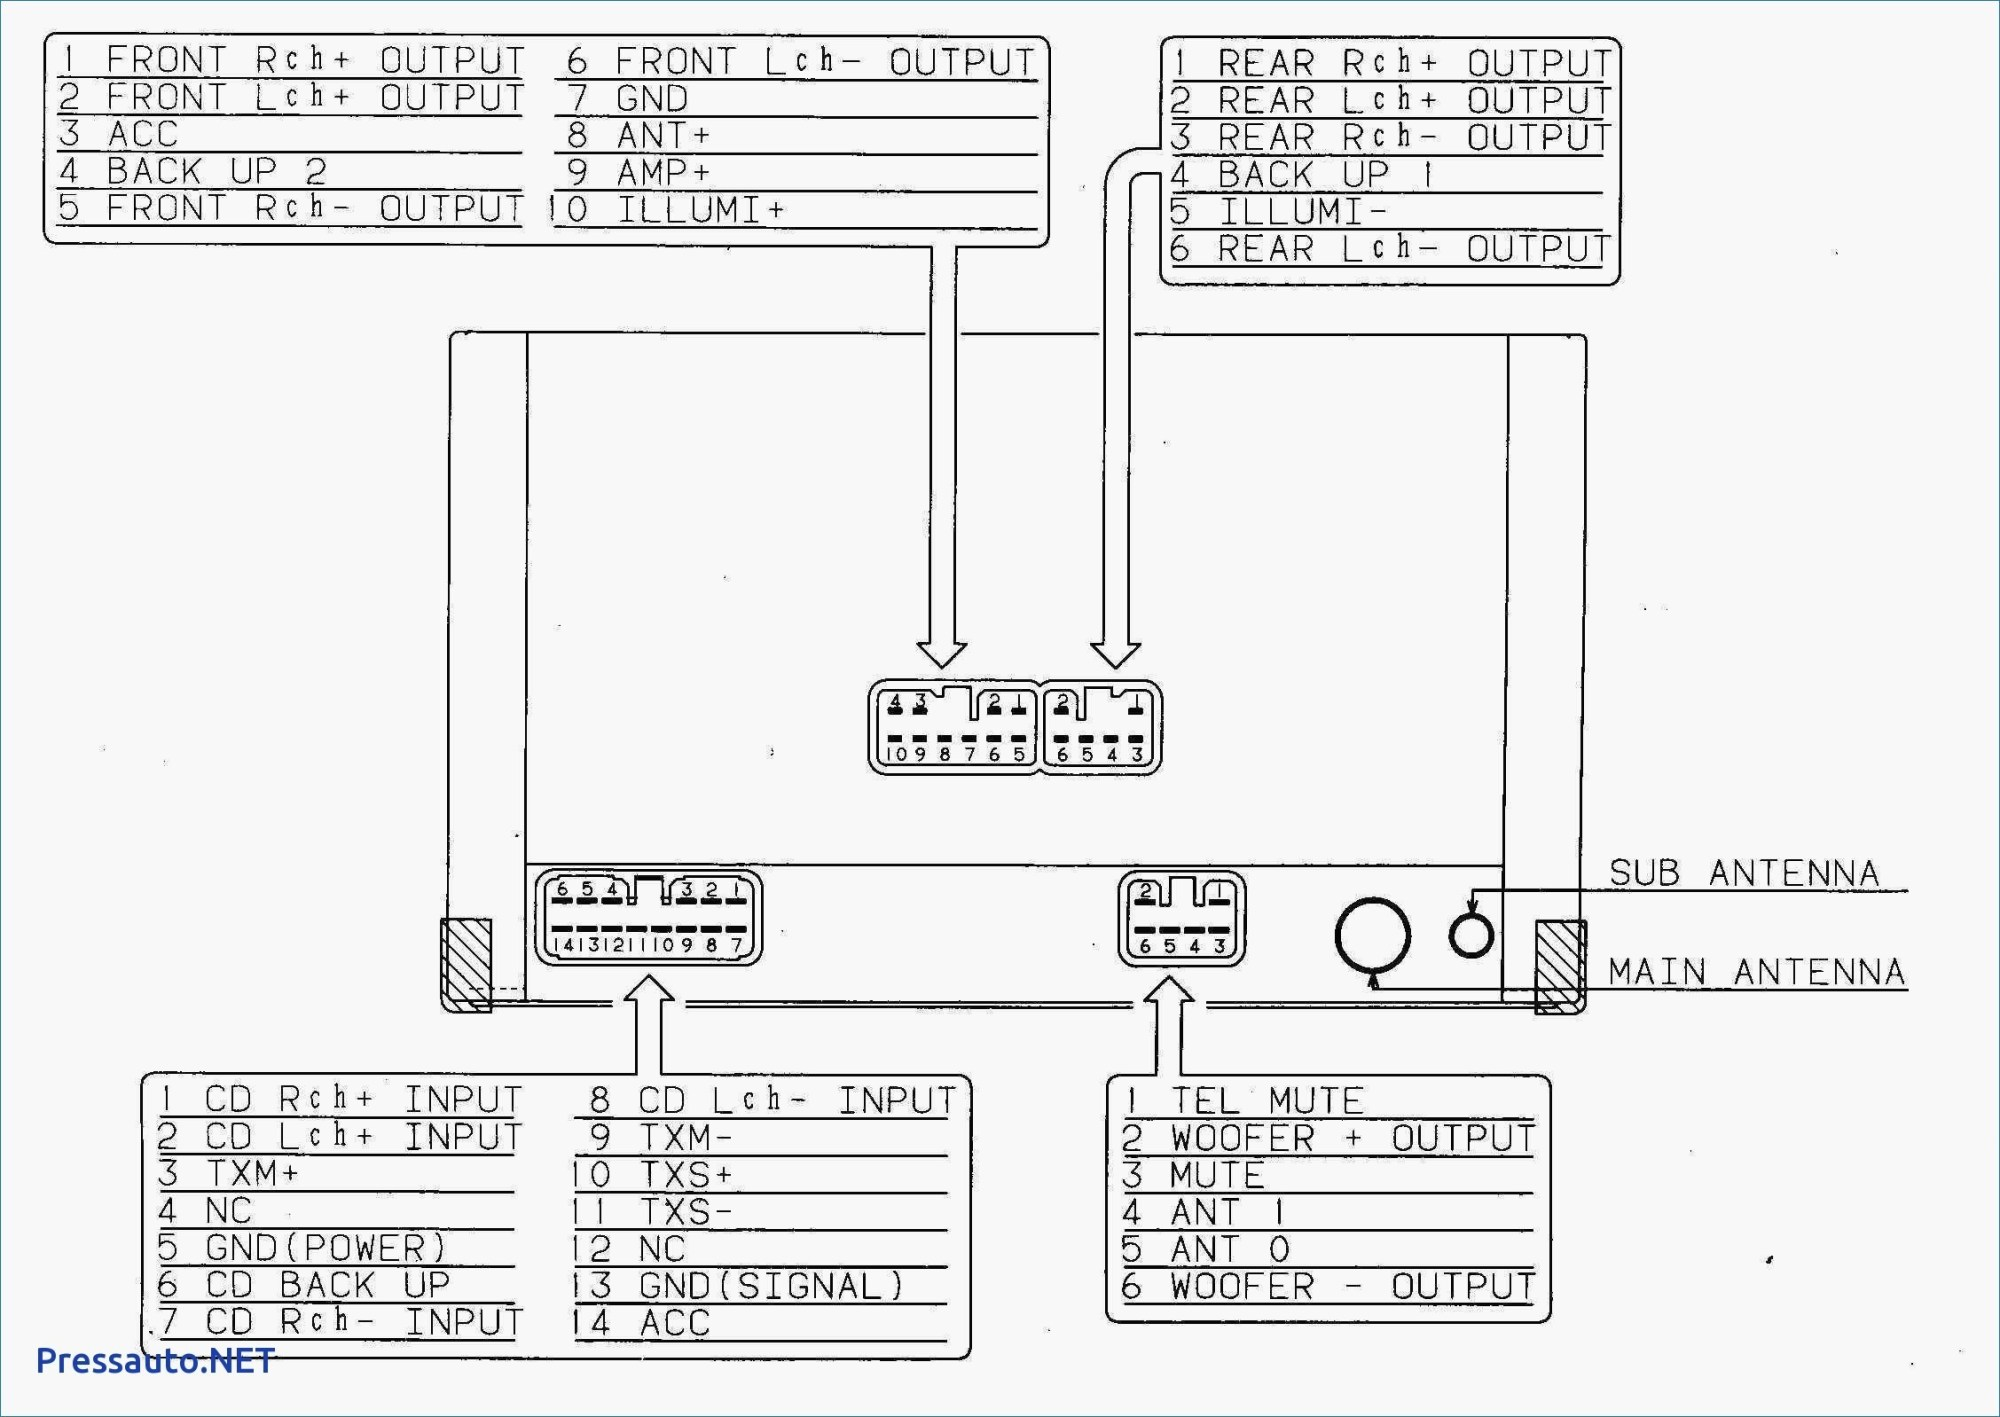 hight resolution of clarion max675vd wiring rca diagram best wiring diagram clarion max675vd wiring rca diagram